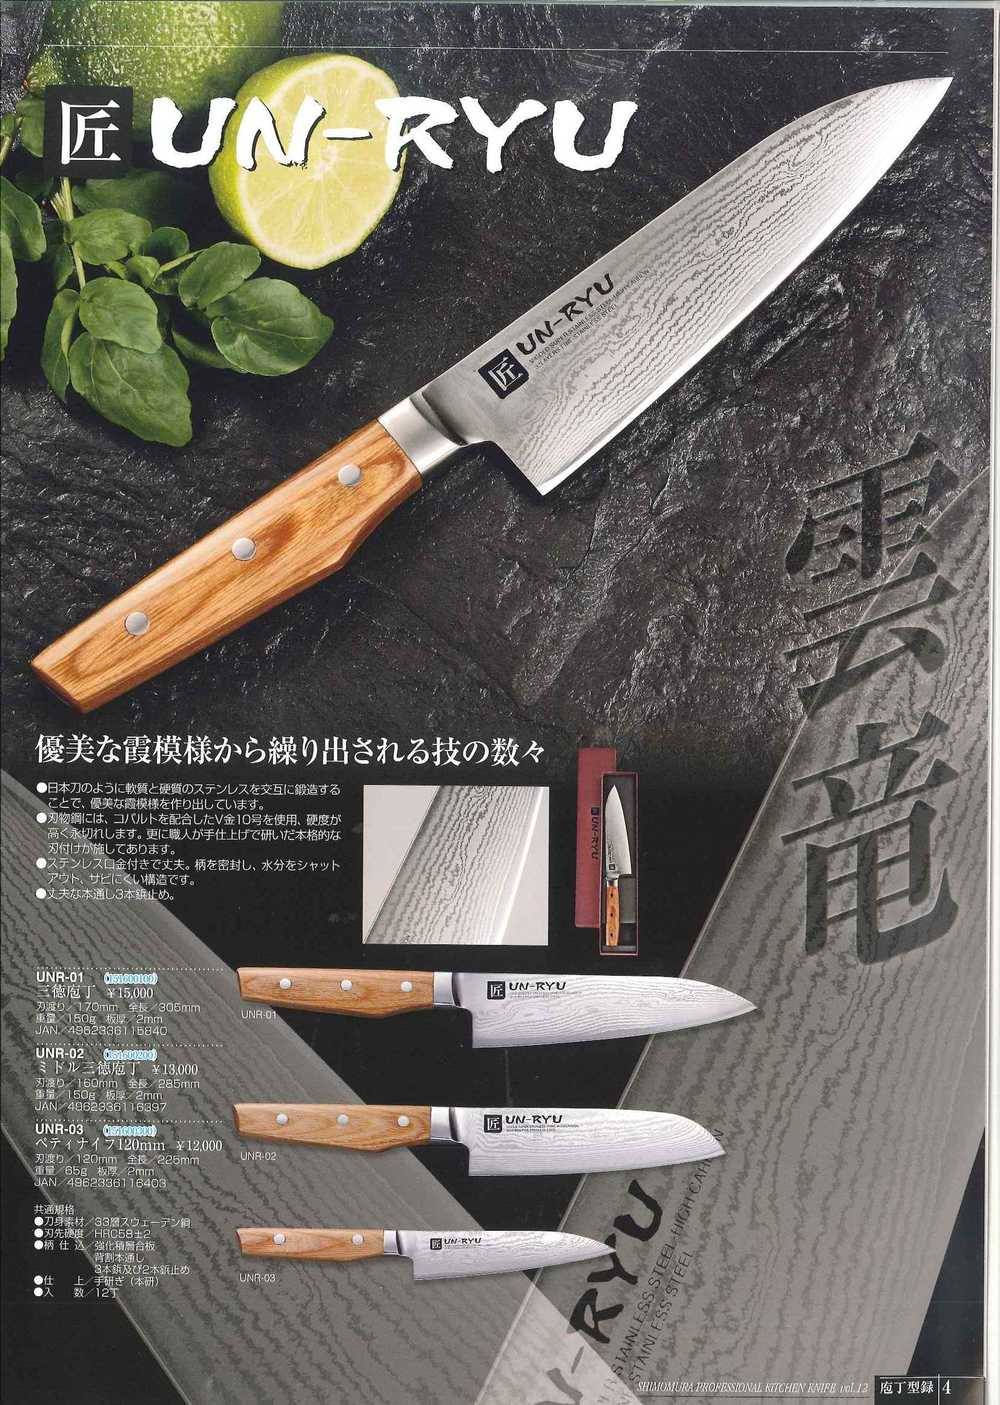 Japanese Kitchen knives set Knife case Pro knife bag made in Japan kitchen knife set